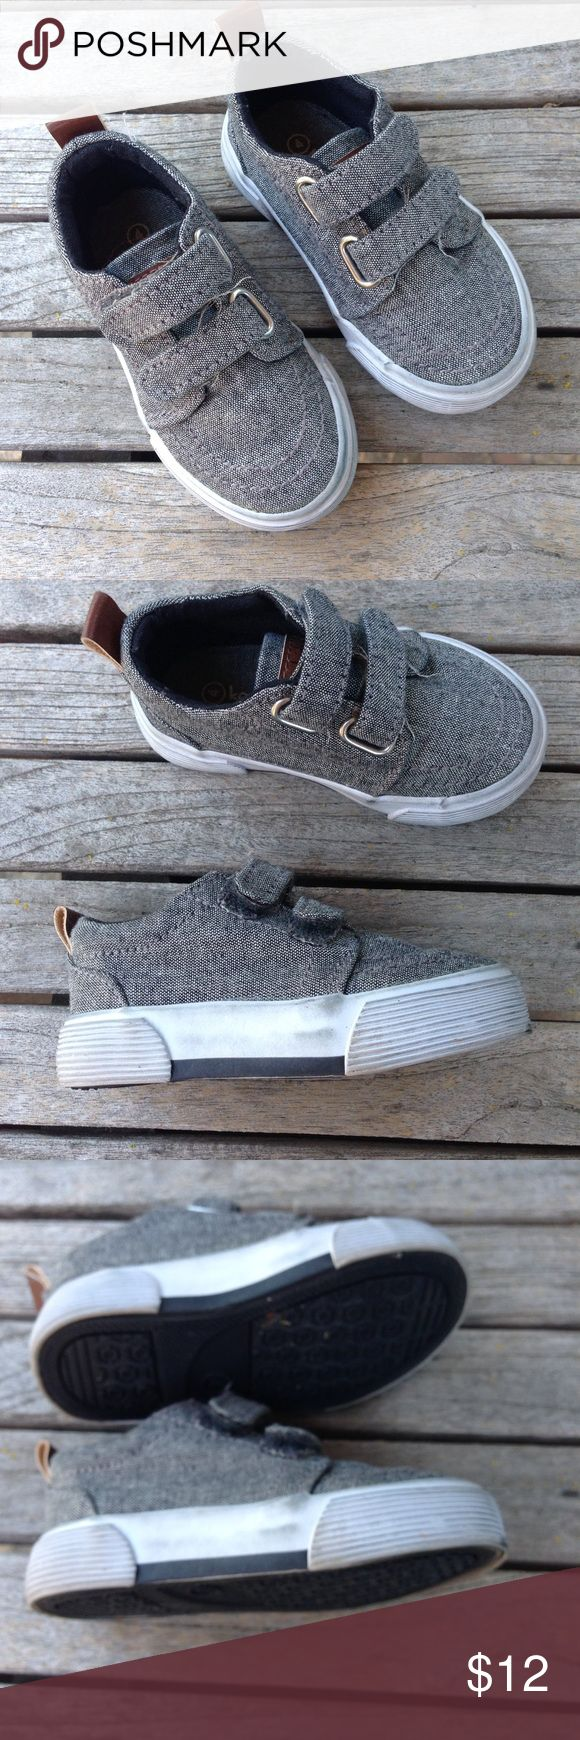 Koala Kids Toddler  Black Denim Sneakers Black Chambray denim sneakers with hook and loop fasteners Made by Koala Kids Size 4 Bit of wear on the sides visible but overall very good used by a toddler condition. Check out my other toddler boy shoes and bundle them to receive a great deal. Koala Kids Shoes Baby & Walker